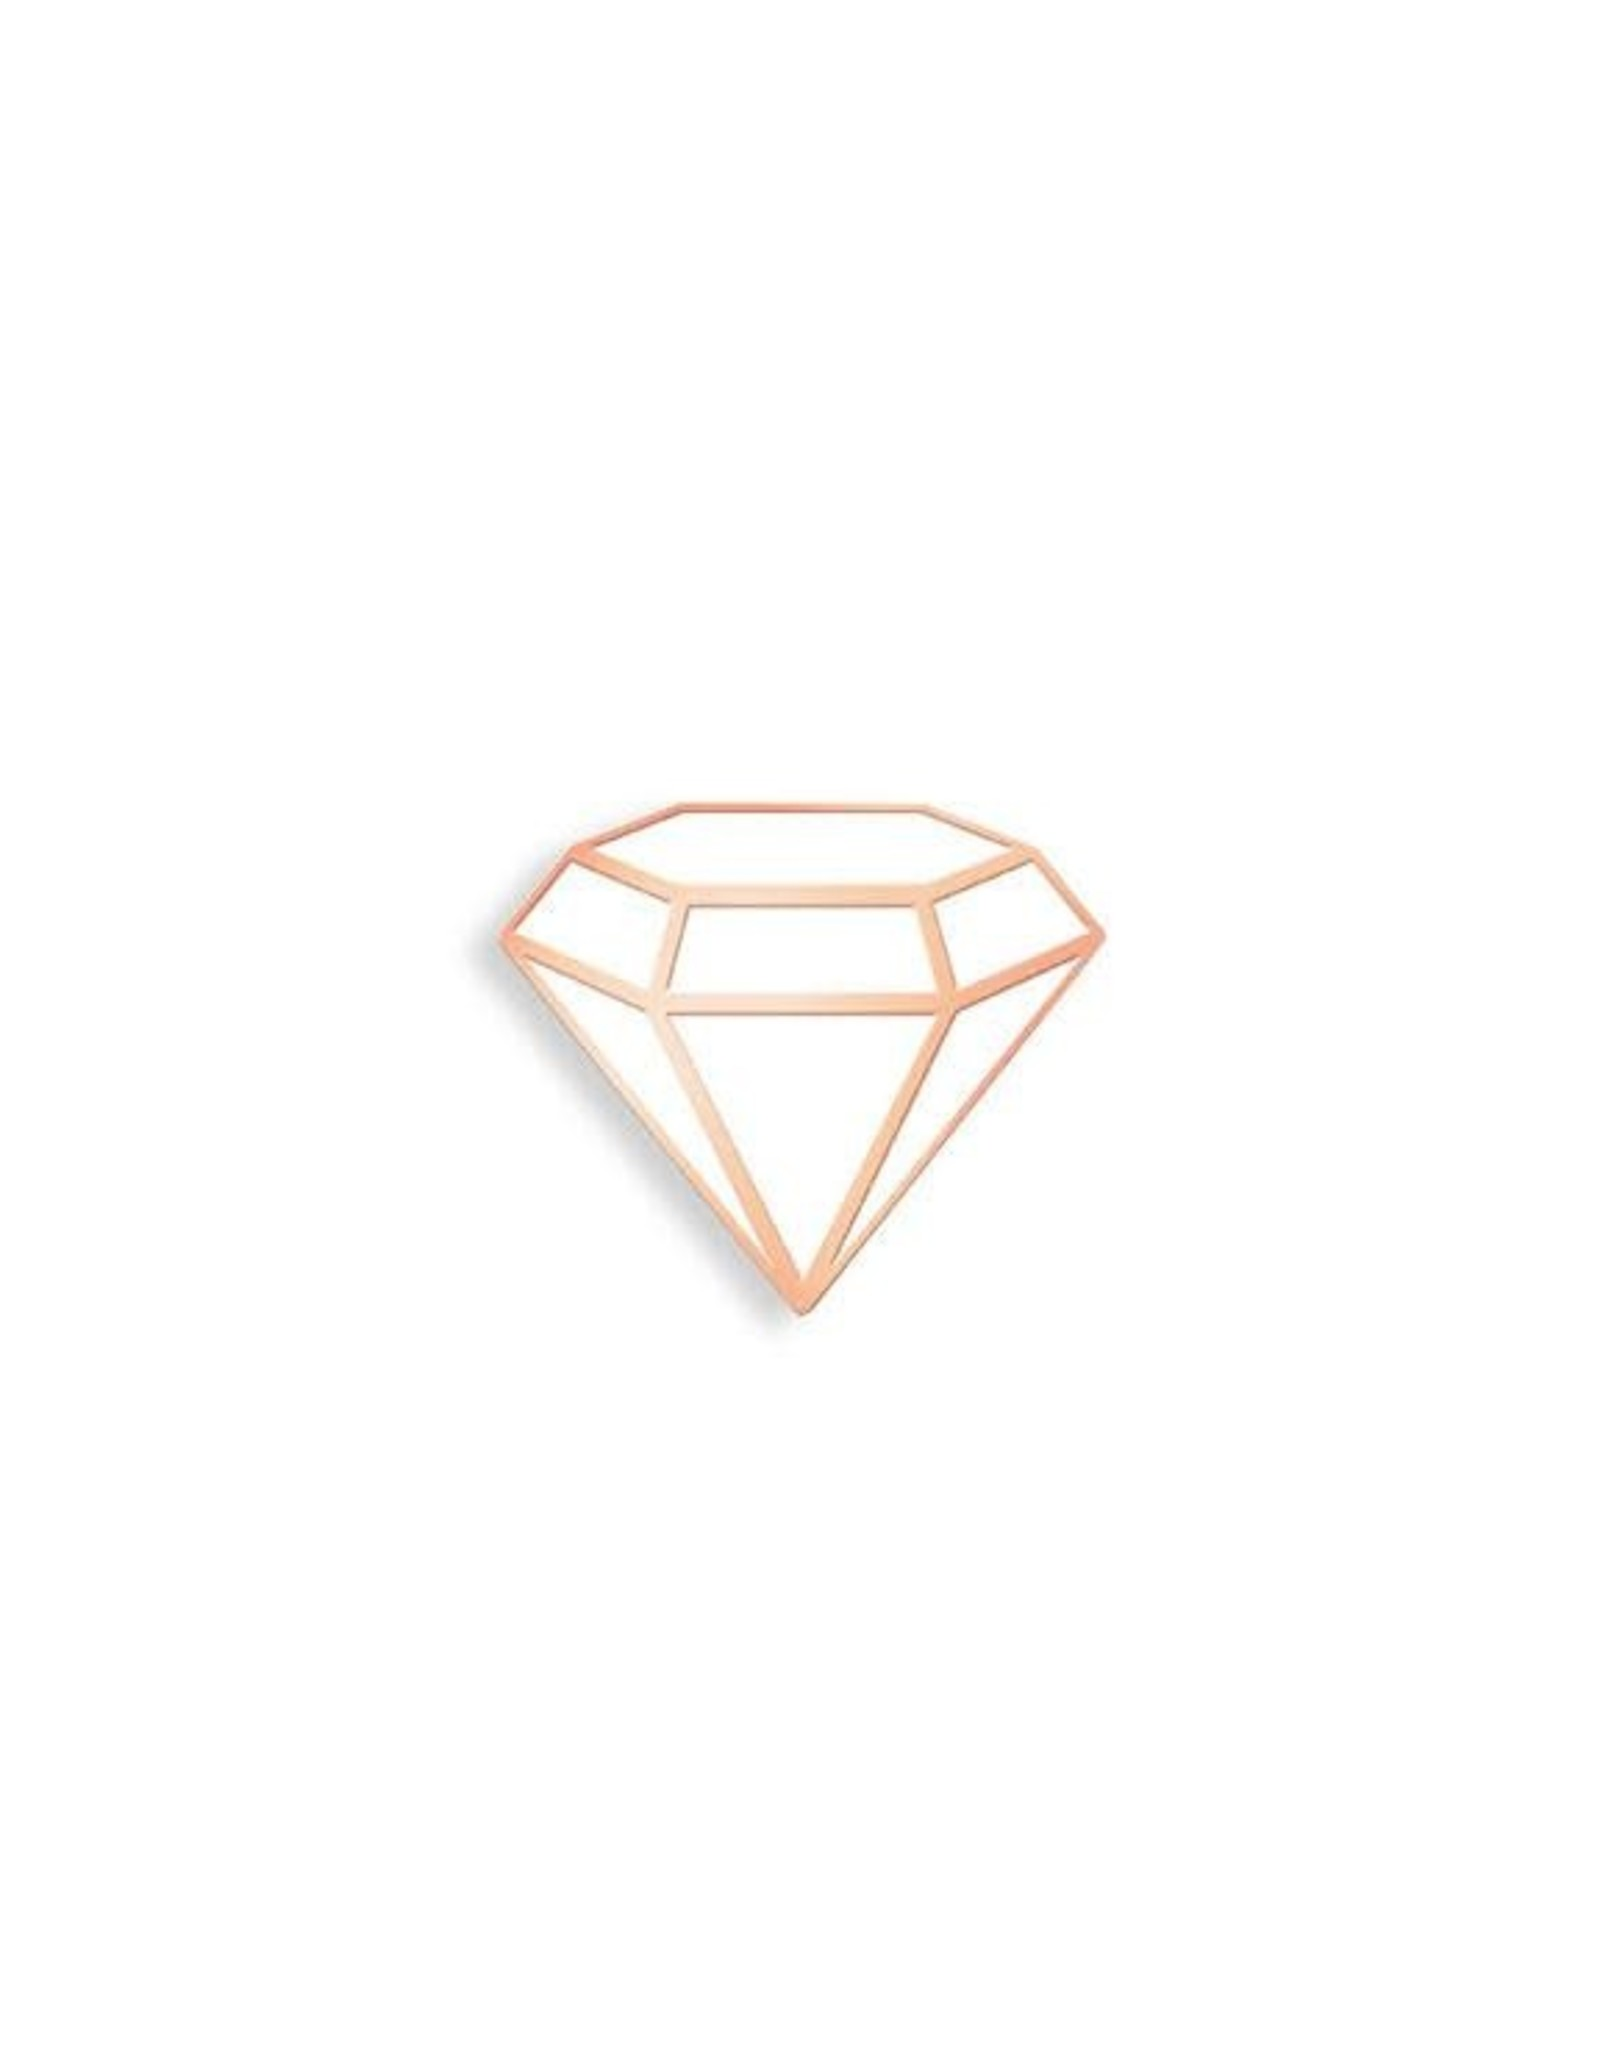 Enamel Pin White Diamond Enamel Pin